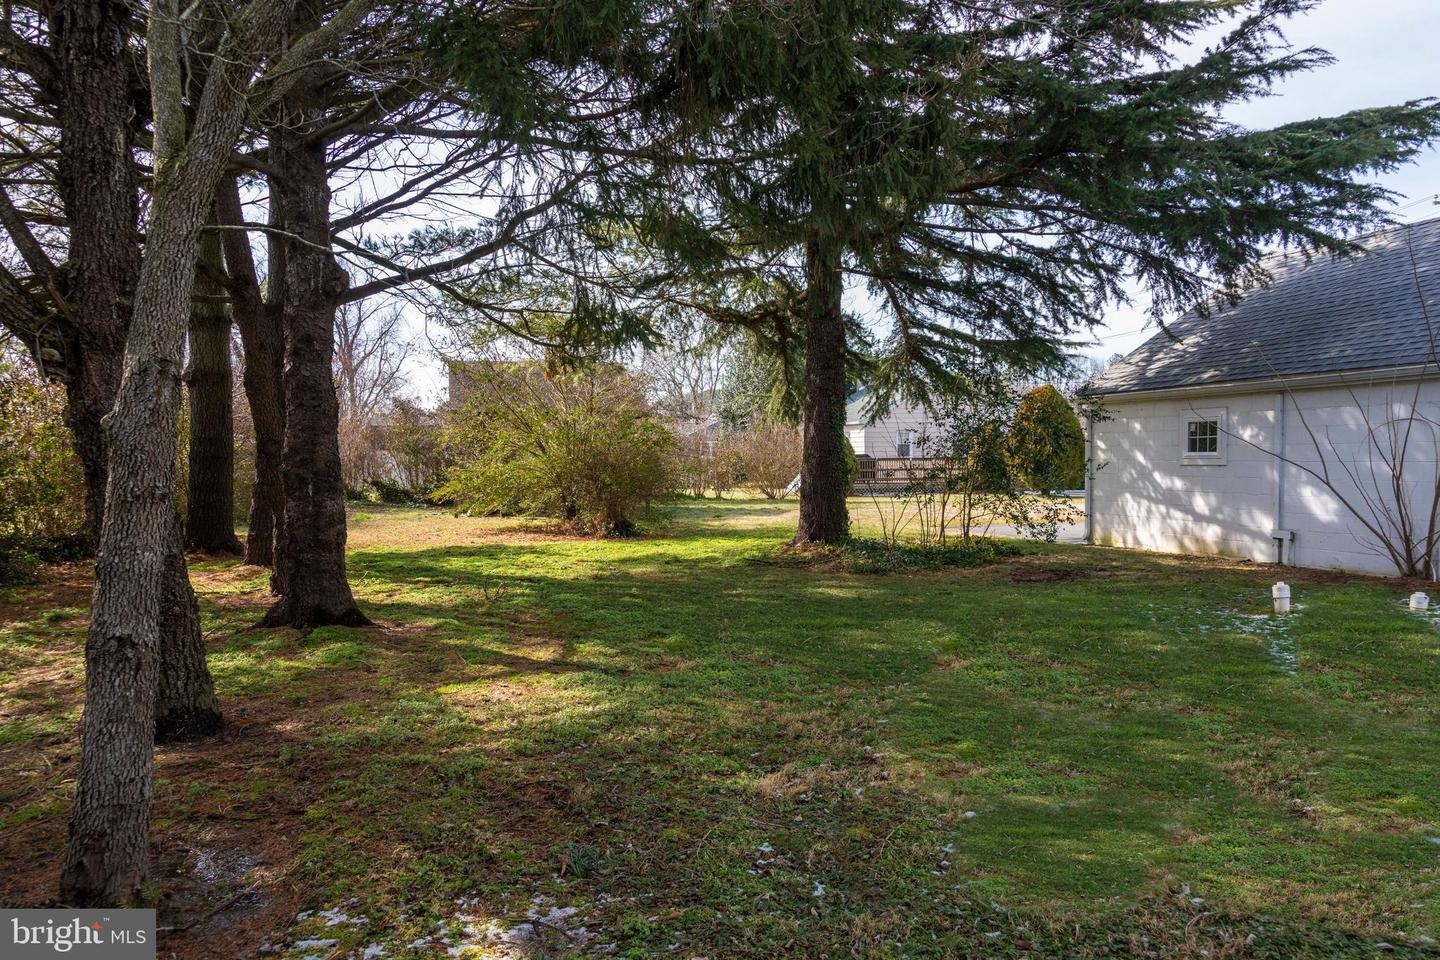 DESU128680-301394020323-2019-02-06-12-26-09 1204 Savannah Rd | Lewes, DE Real Estate For Sale | MLS# Desu128680  - Coldwell Banker Resort Realty